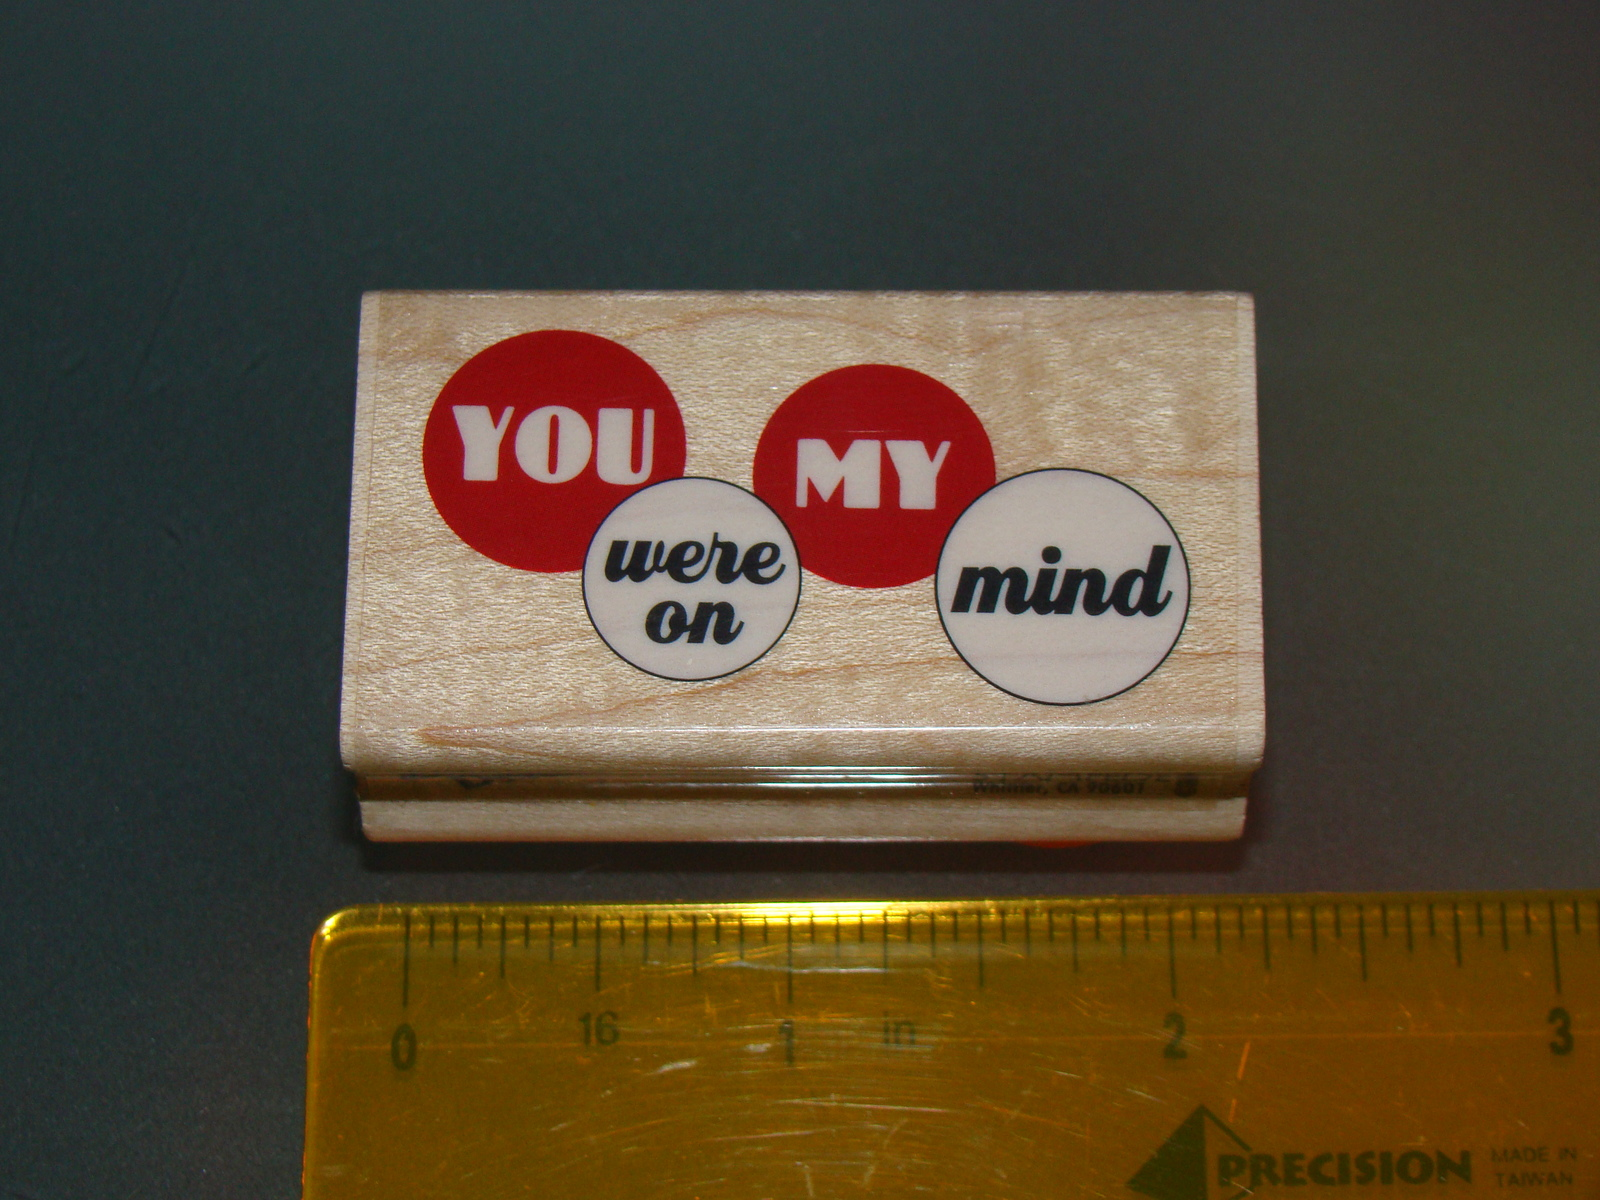 Rubber Stamps - YOU were on MY mind (New)